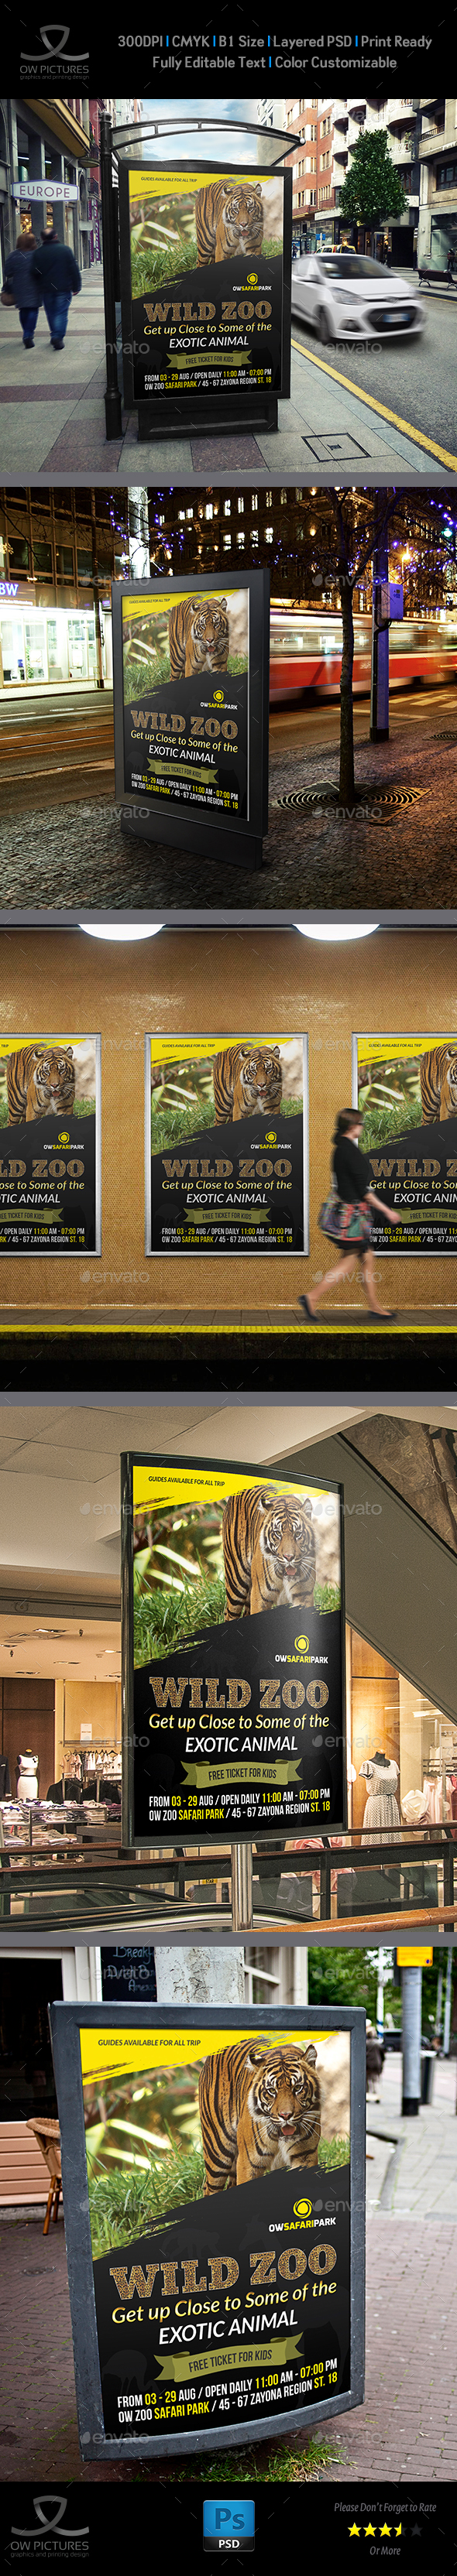 Zoo Poster Template - Signage Print Templates